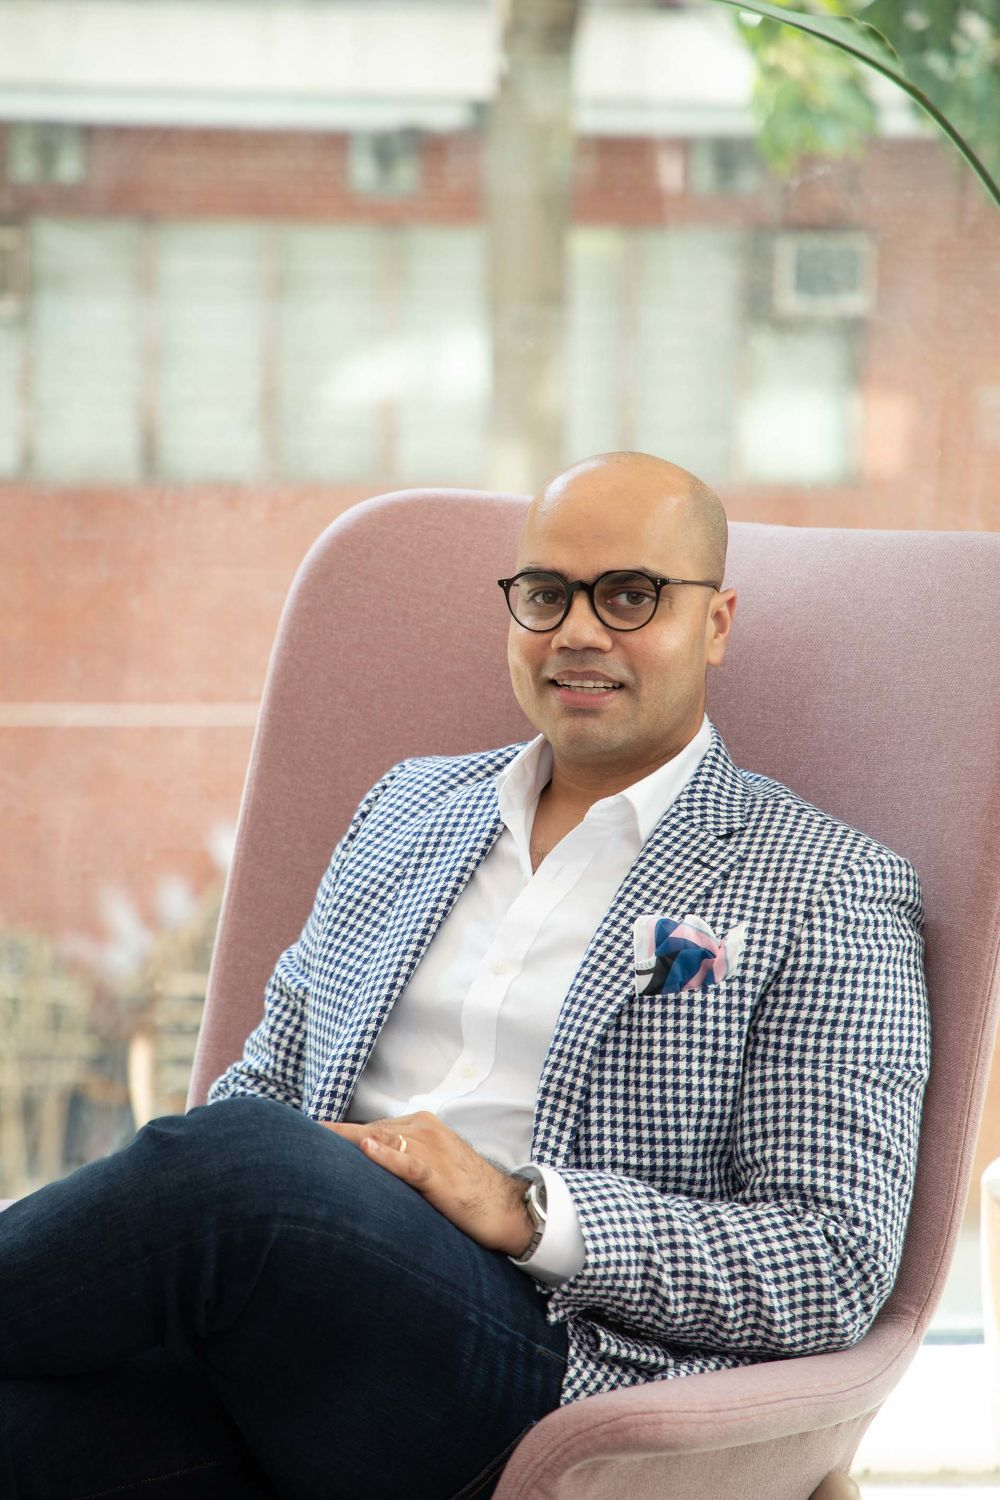 EDGEPROP SINGAPORE - Doshi: I believe Weave will provide a breath of fresh air to the rental market and co-living scene in Singapore (Photo: Weave Co-Living)